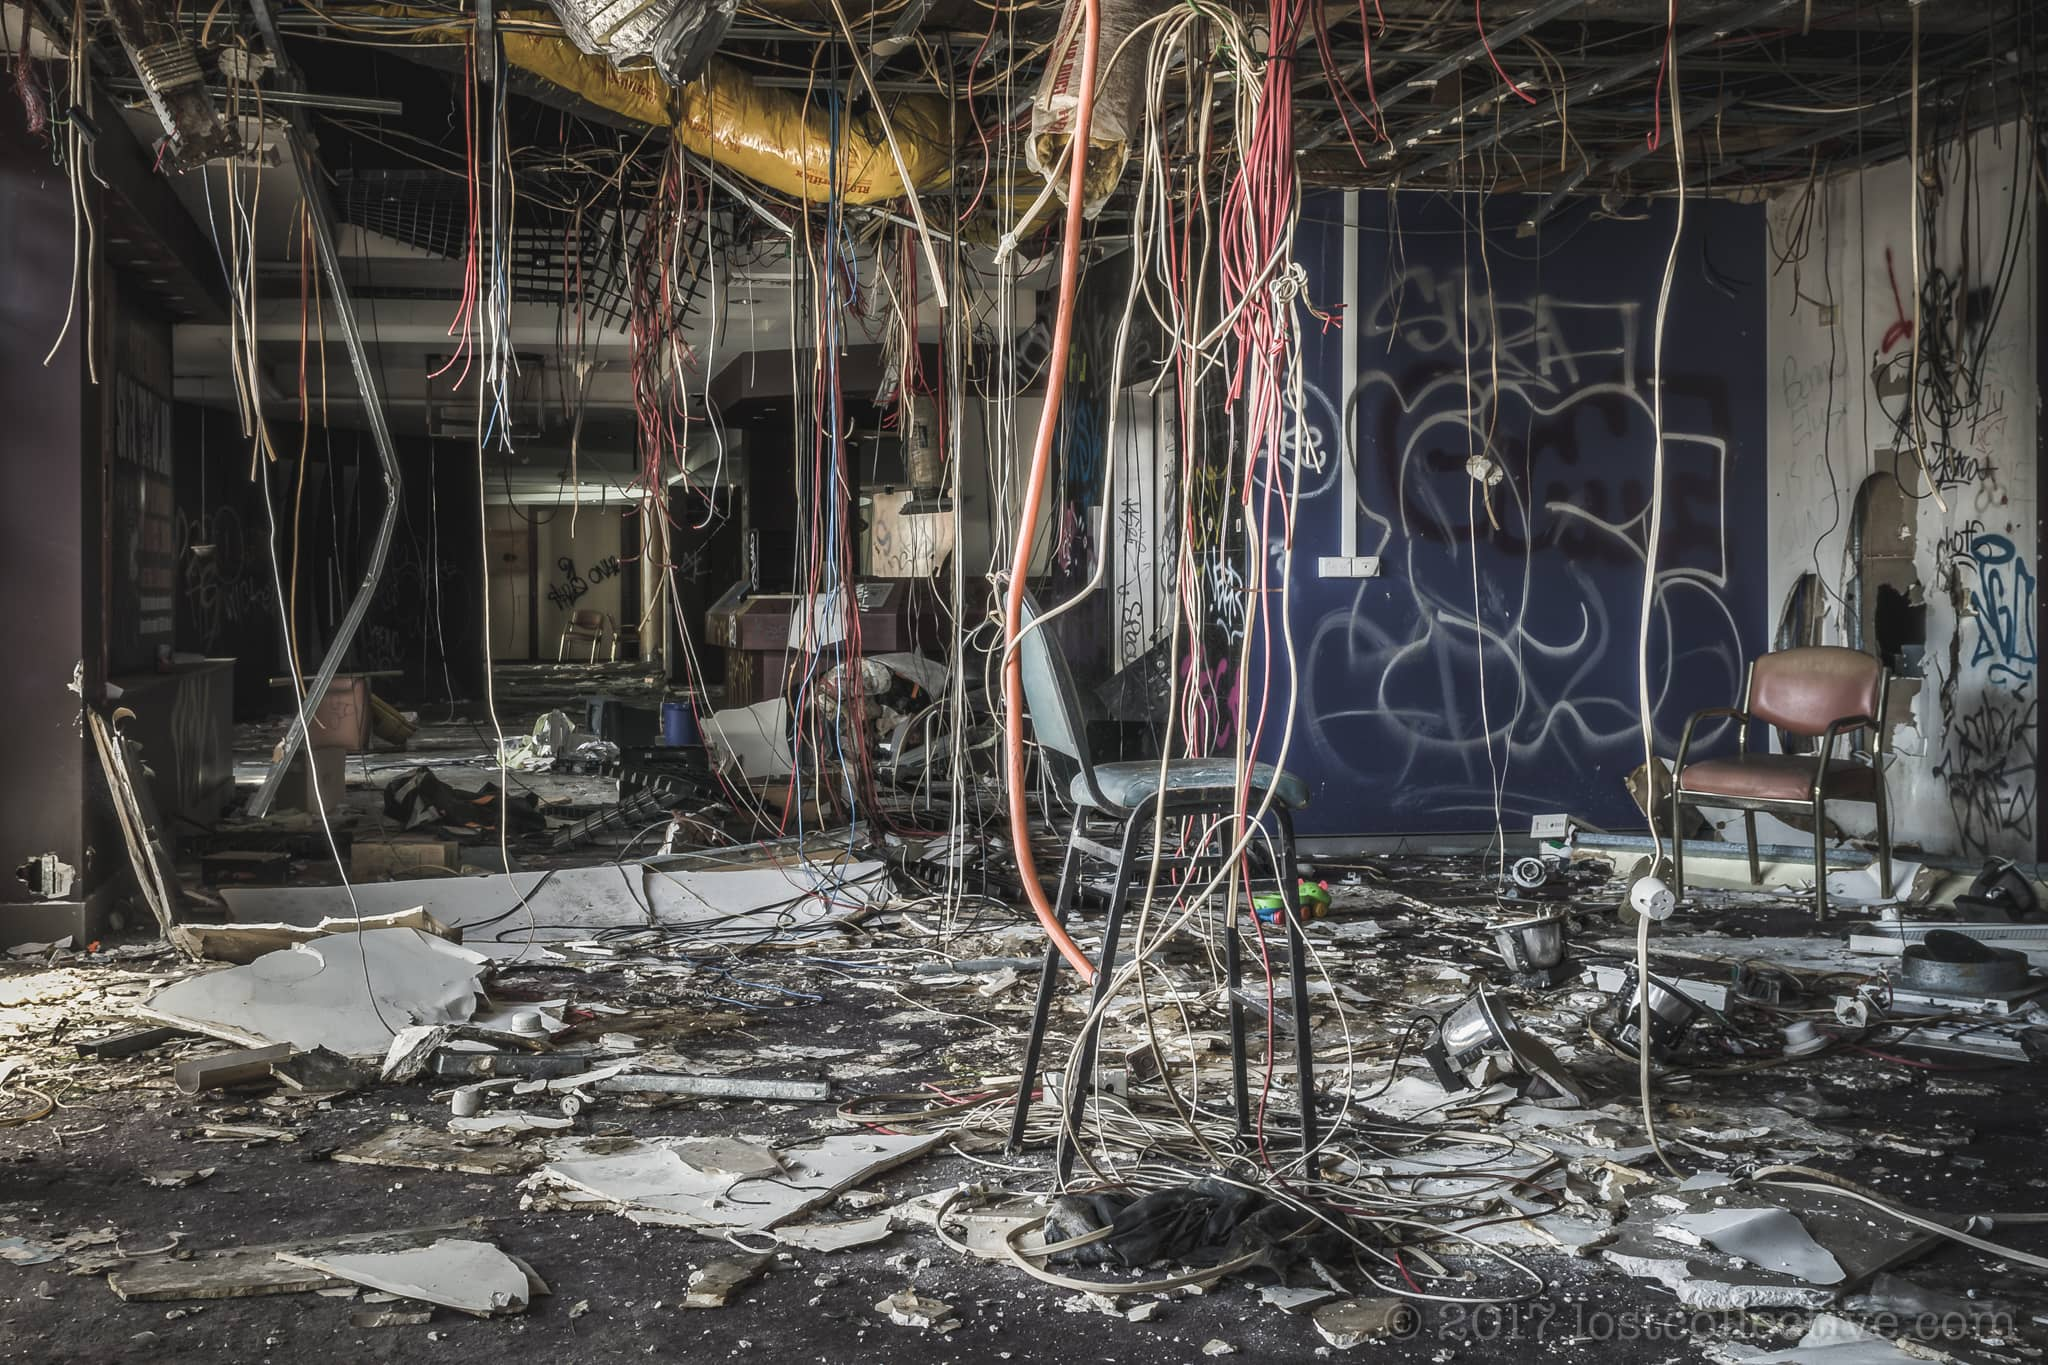 stripped cables hanging from the ceiling of the abandoned balmain leagues club - lost collective